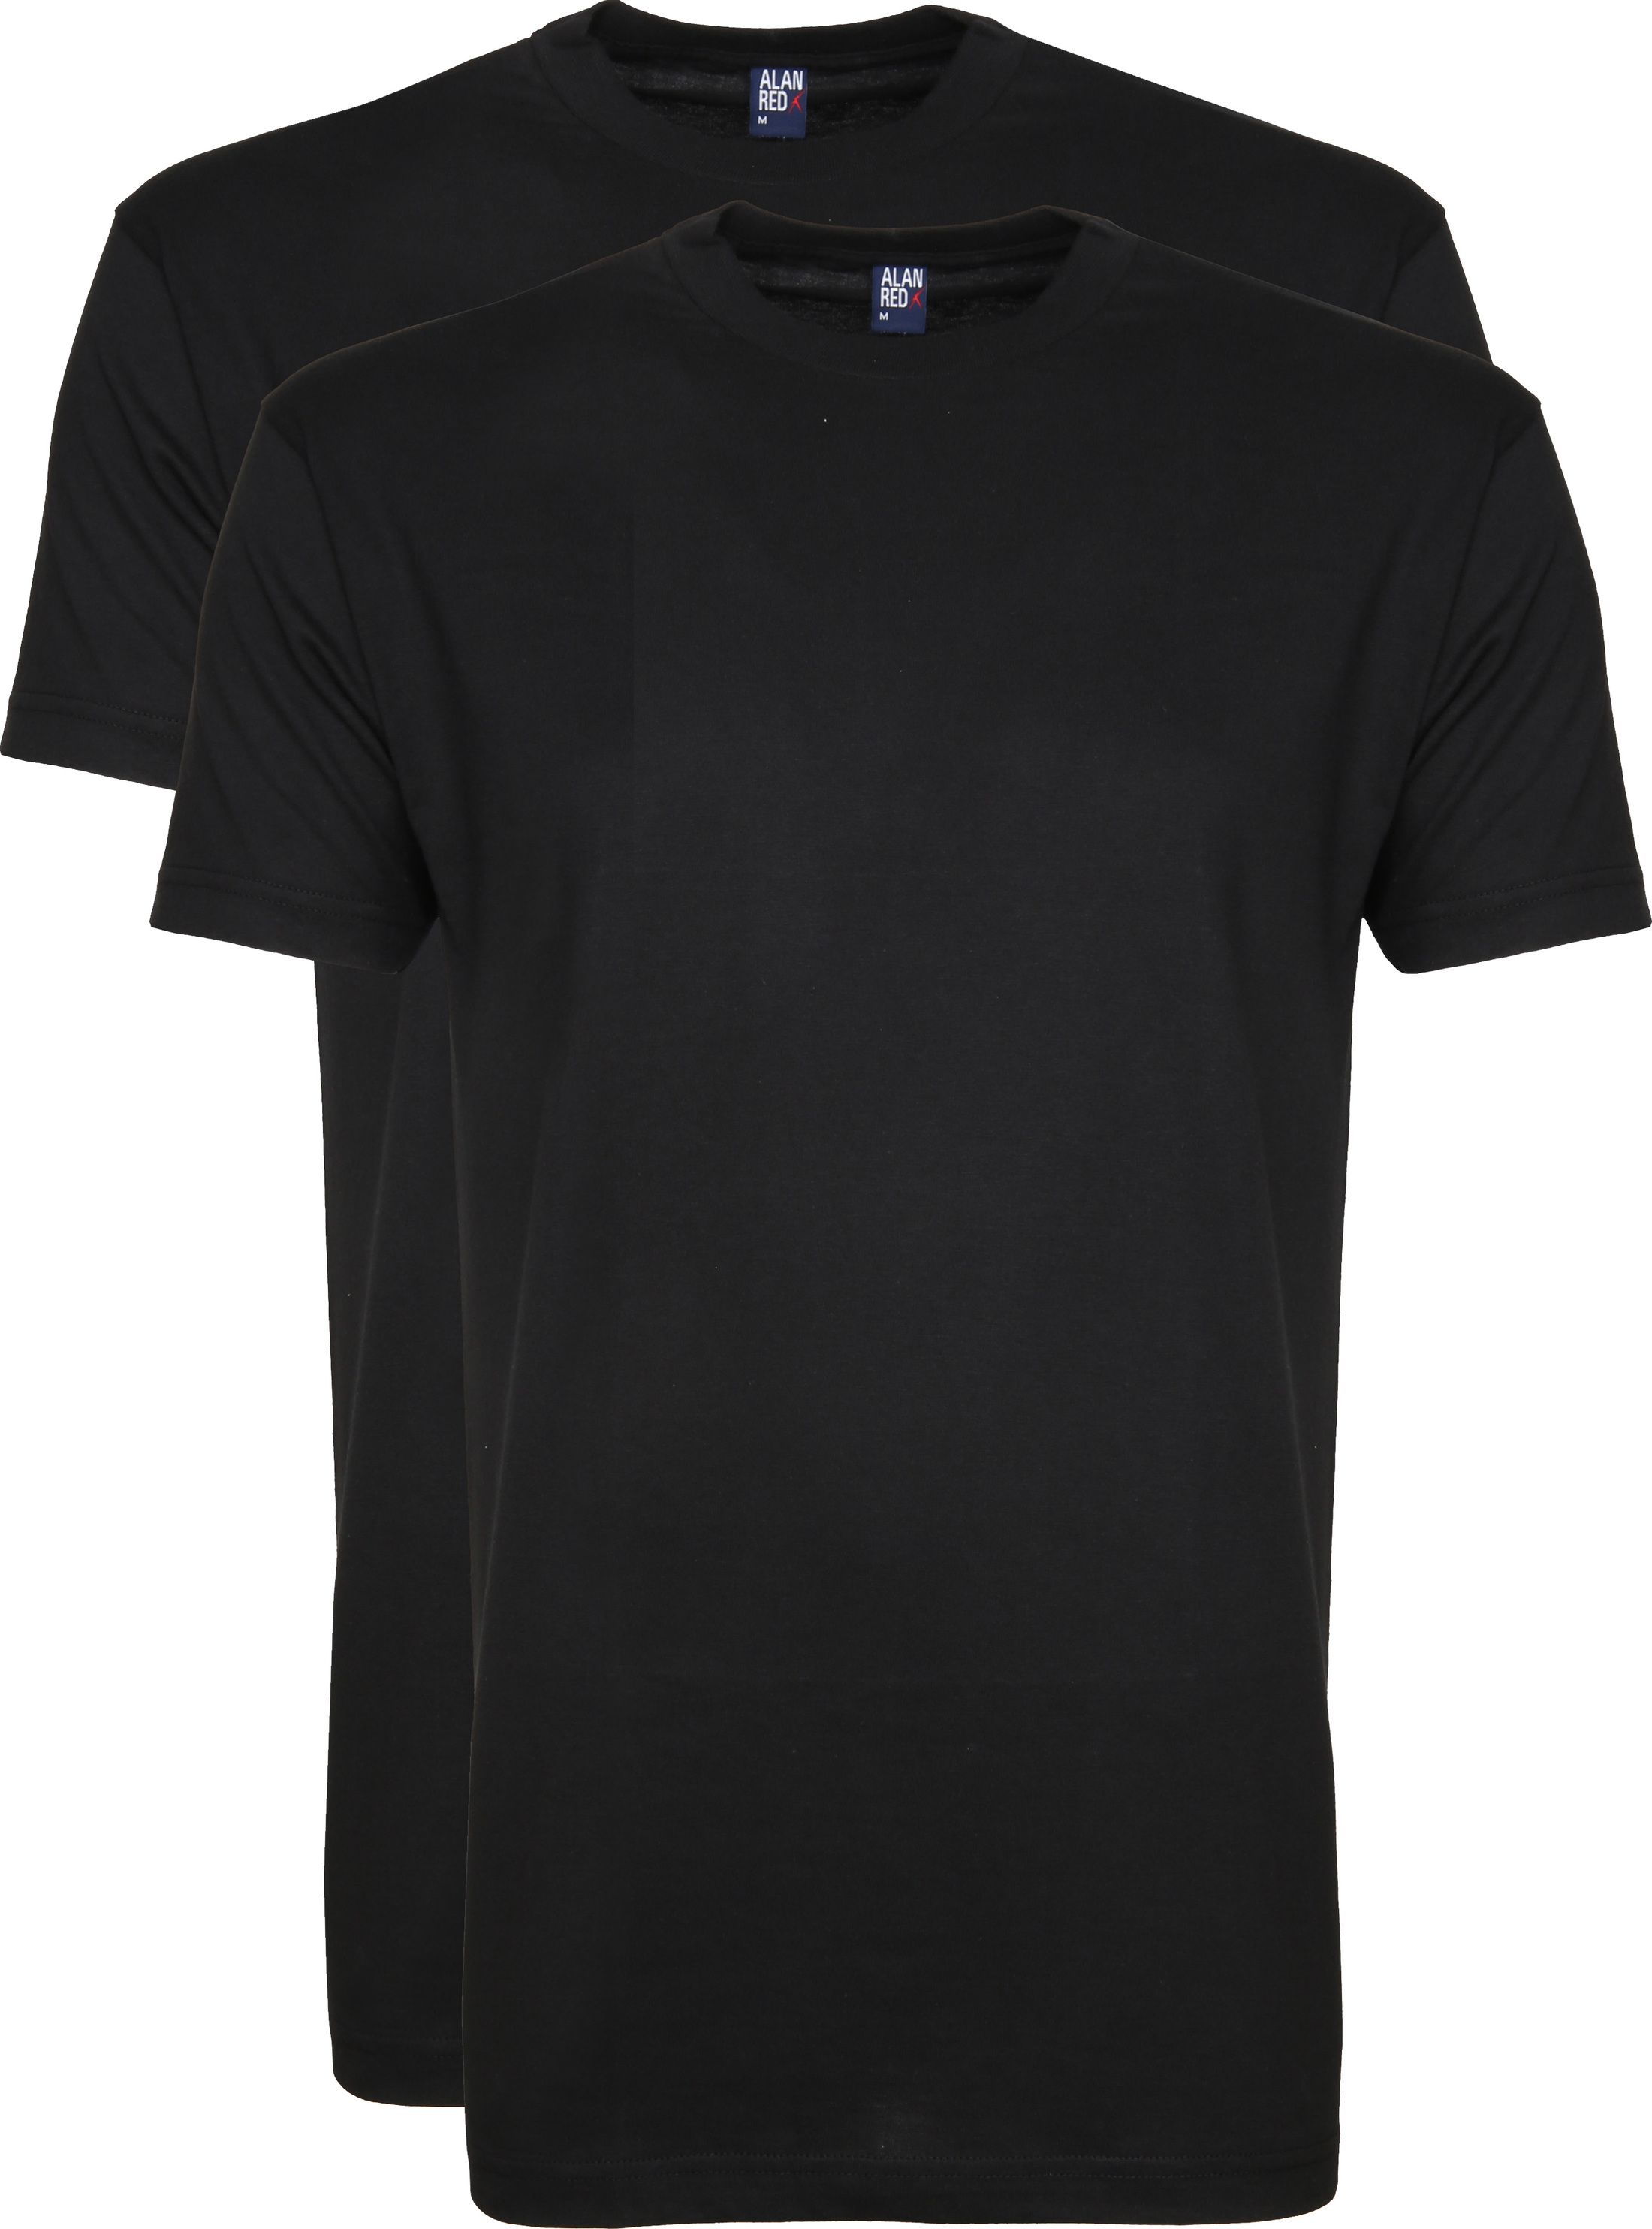 Alan Red T-shirt Virginia O-Neck Black 2-Pack photo 0